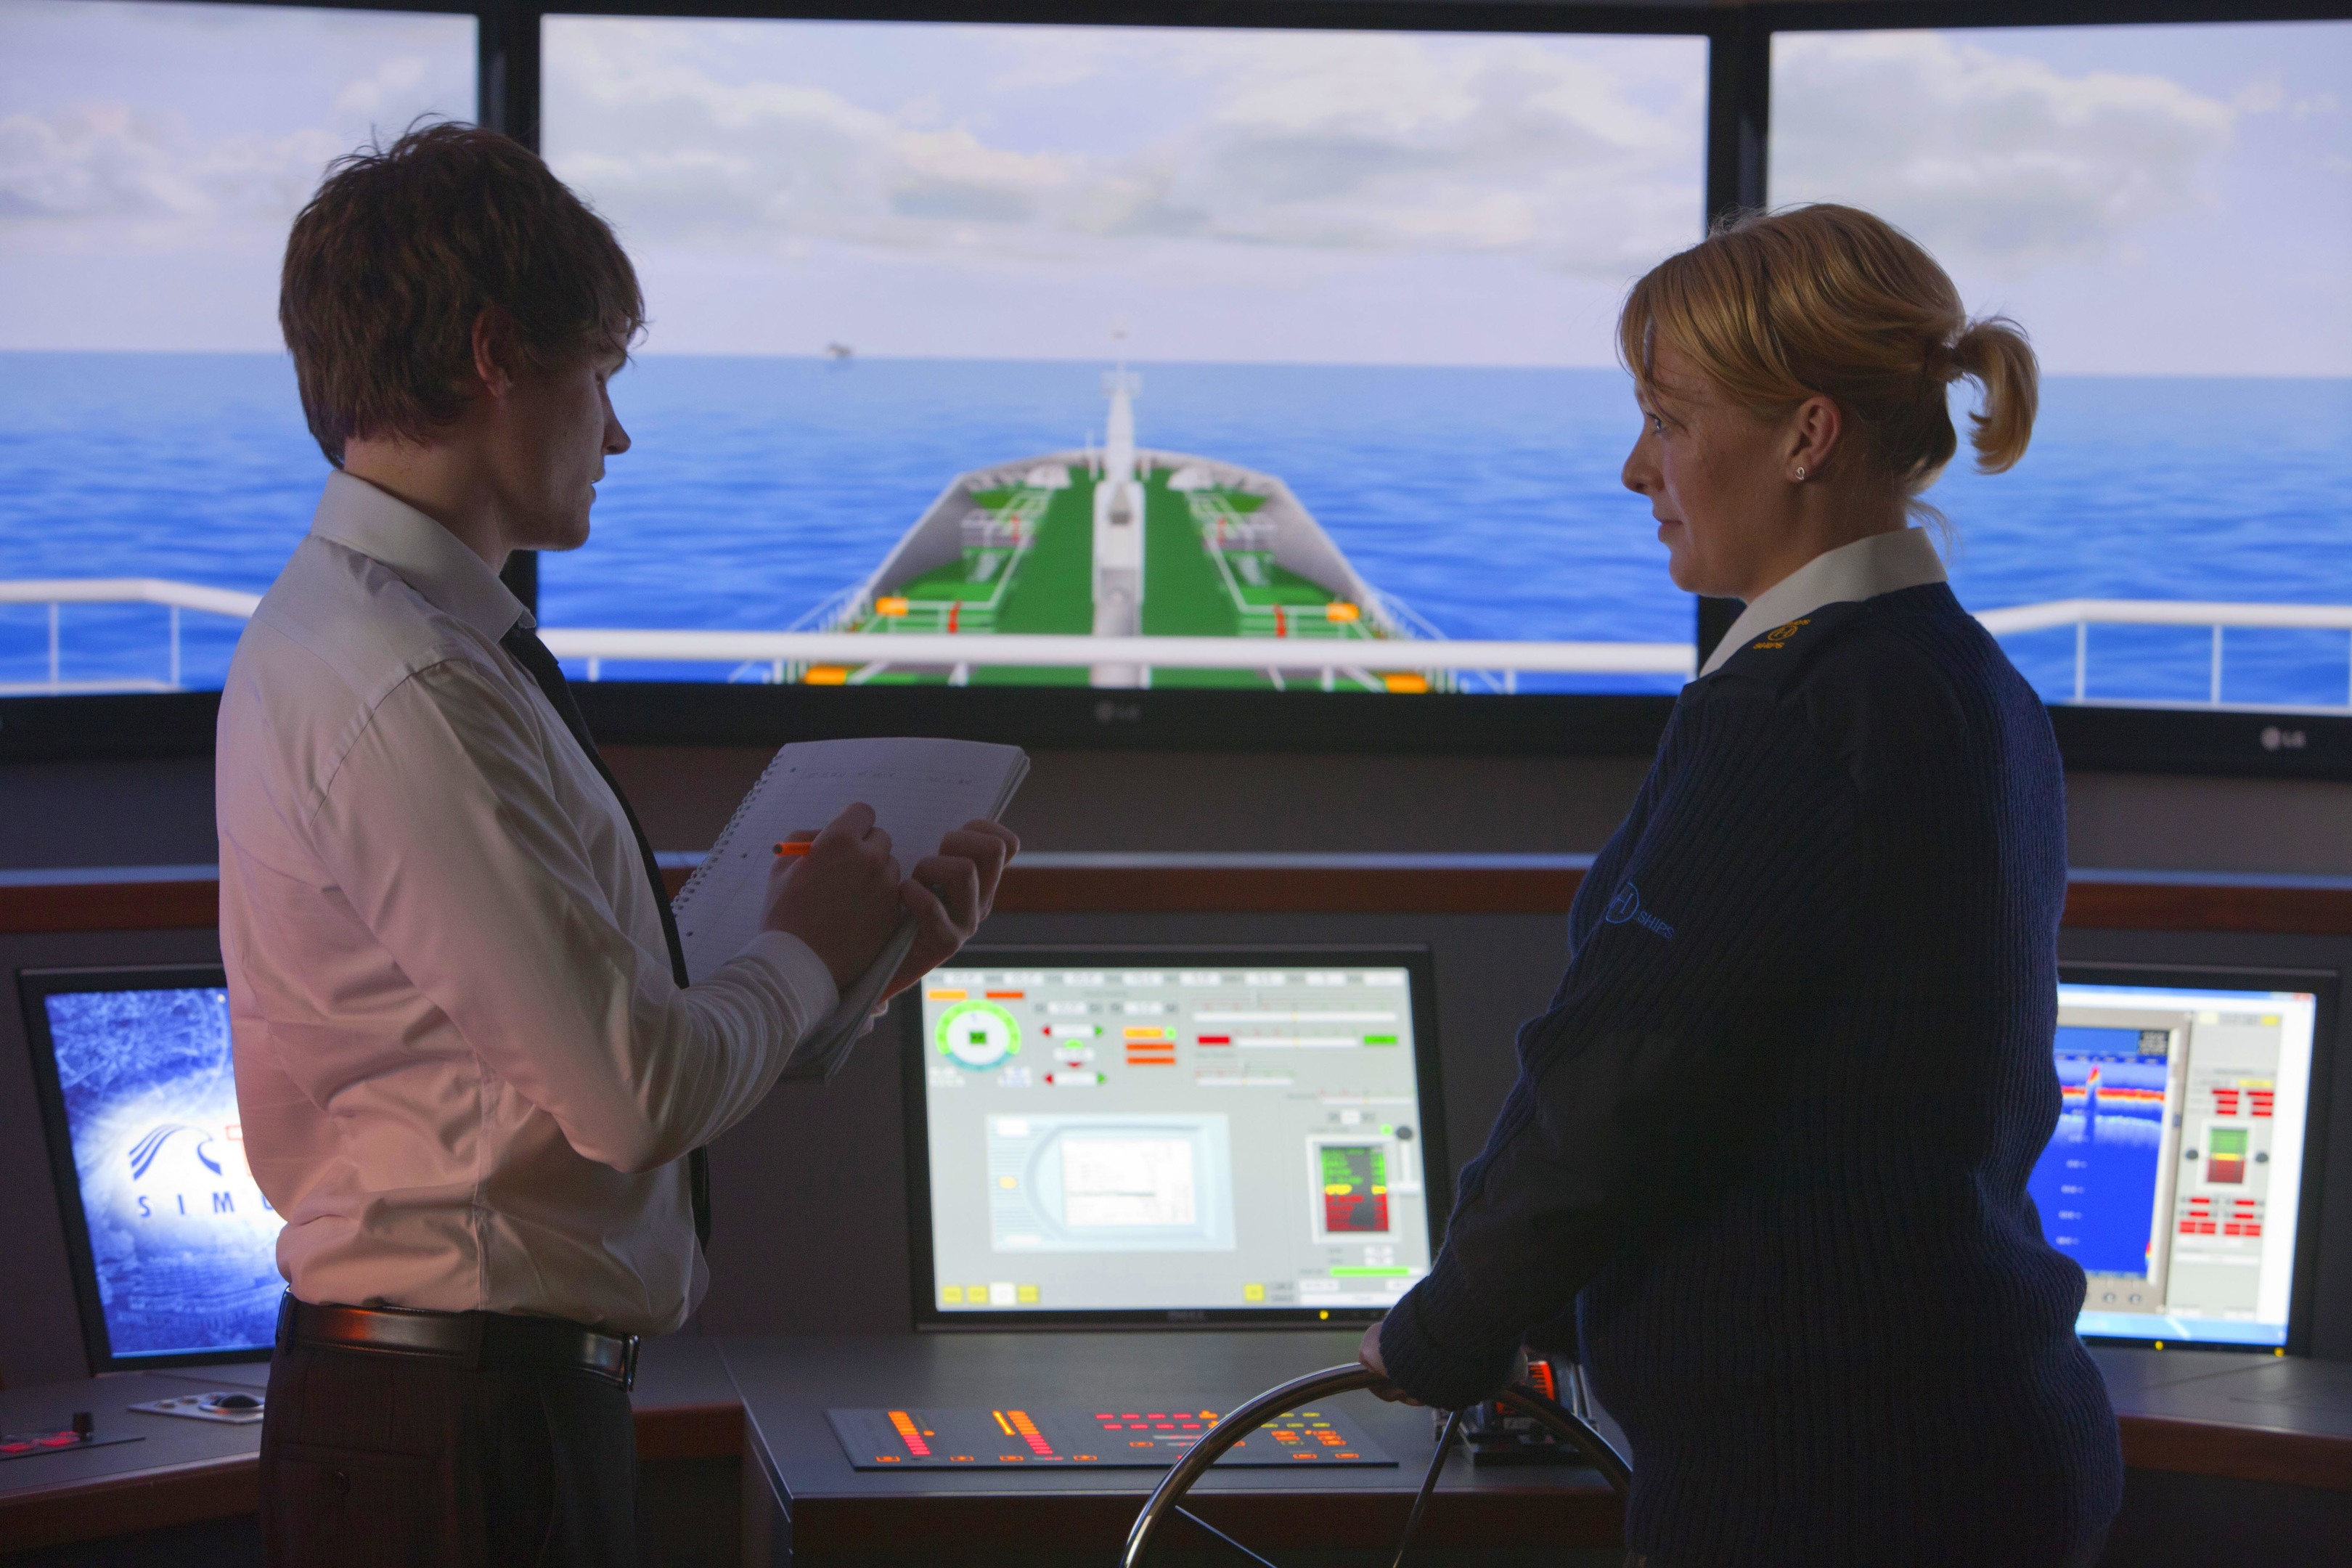 Cadets using the Ship Simulator at the Scottish Maritime Academy